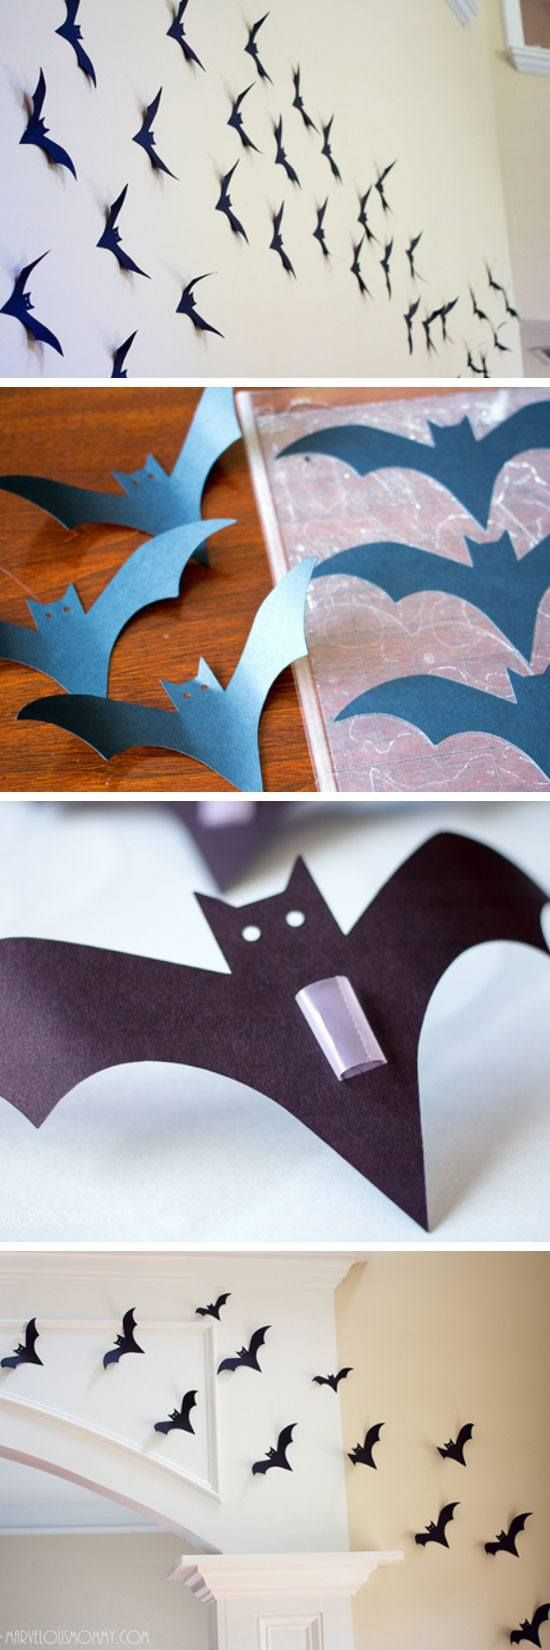 Wall of Bats-easy-to-make DIY Halloween craft for kids